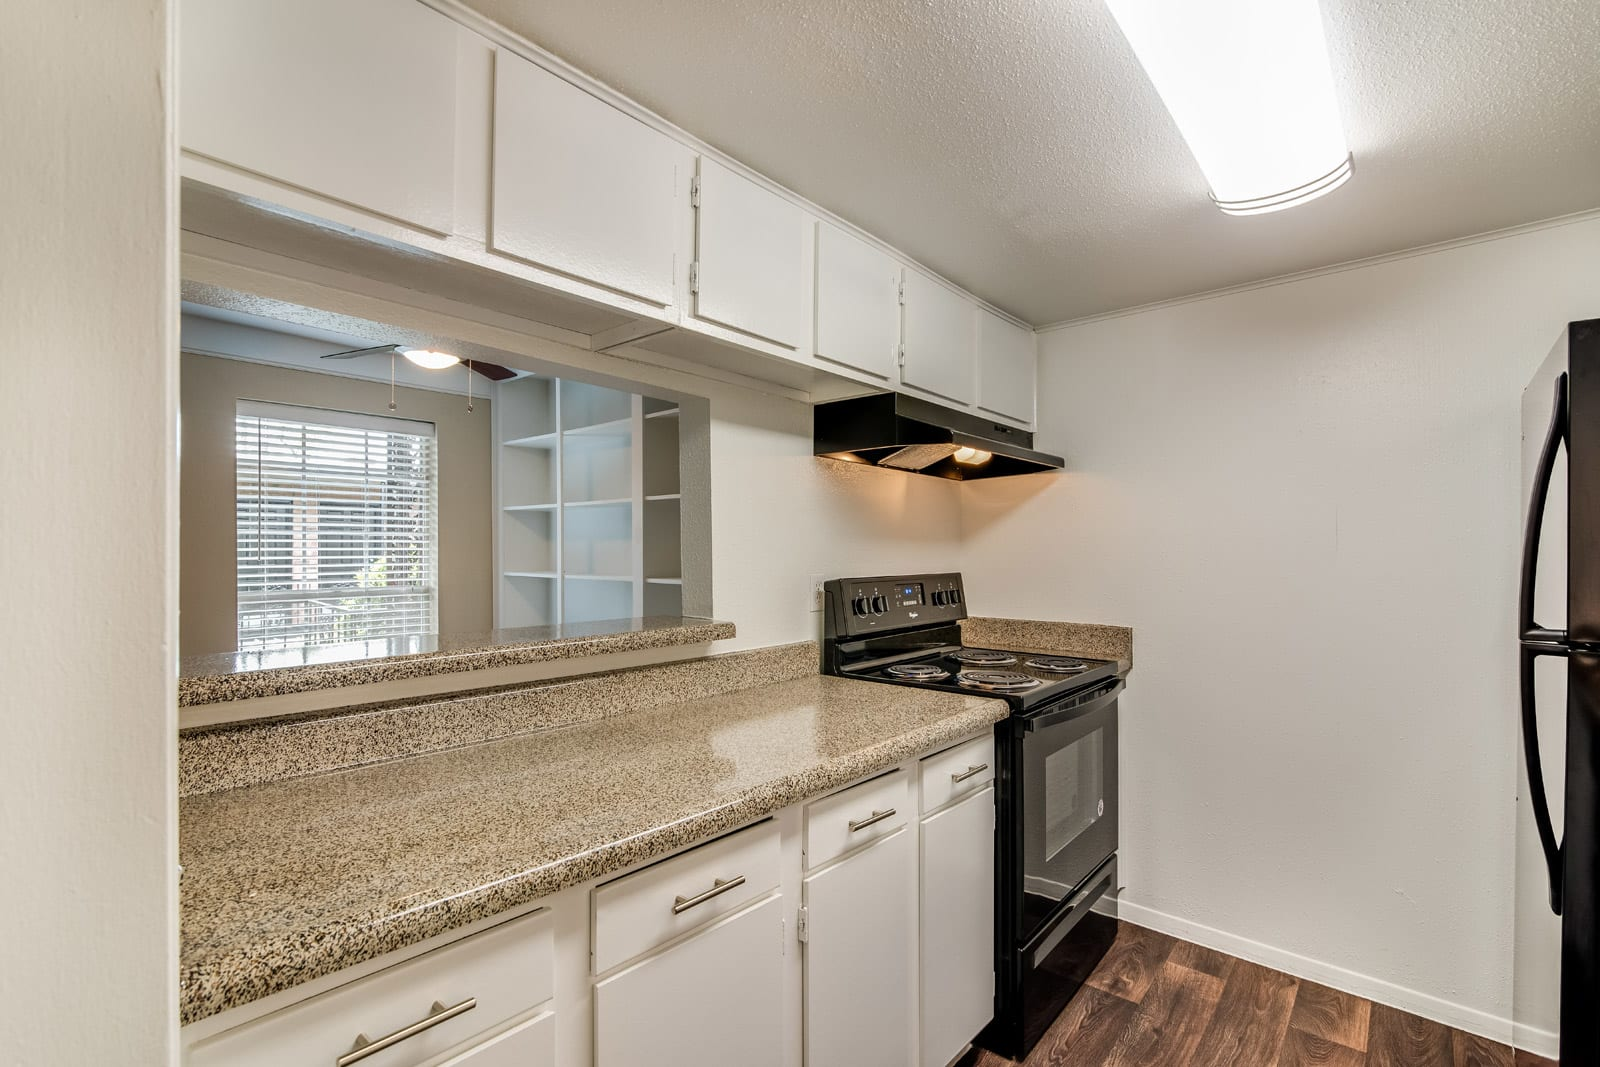 New Stainless Steel Appliances at Allen House Apartments, 3433 West Dallas Street, TX